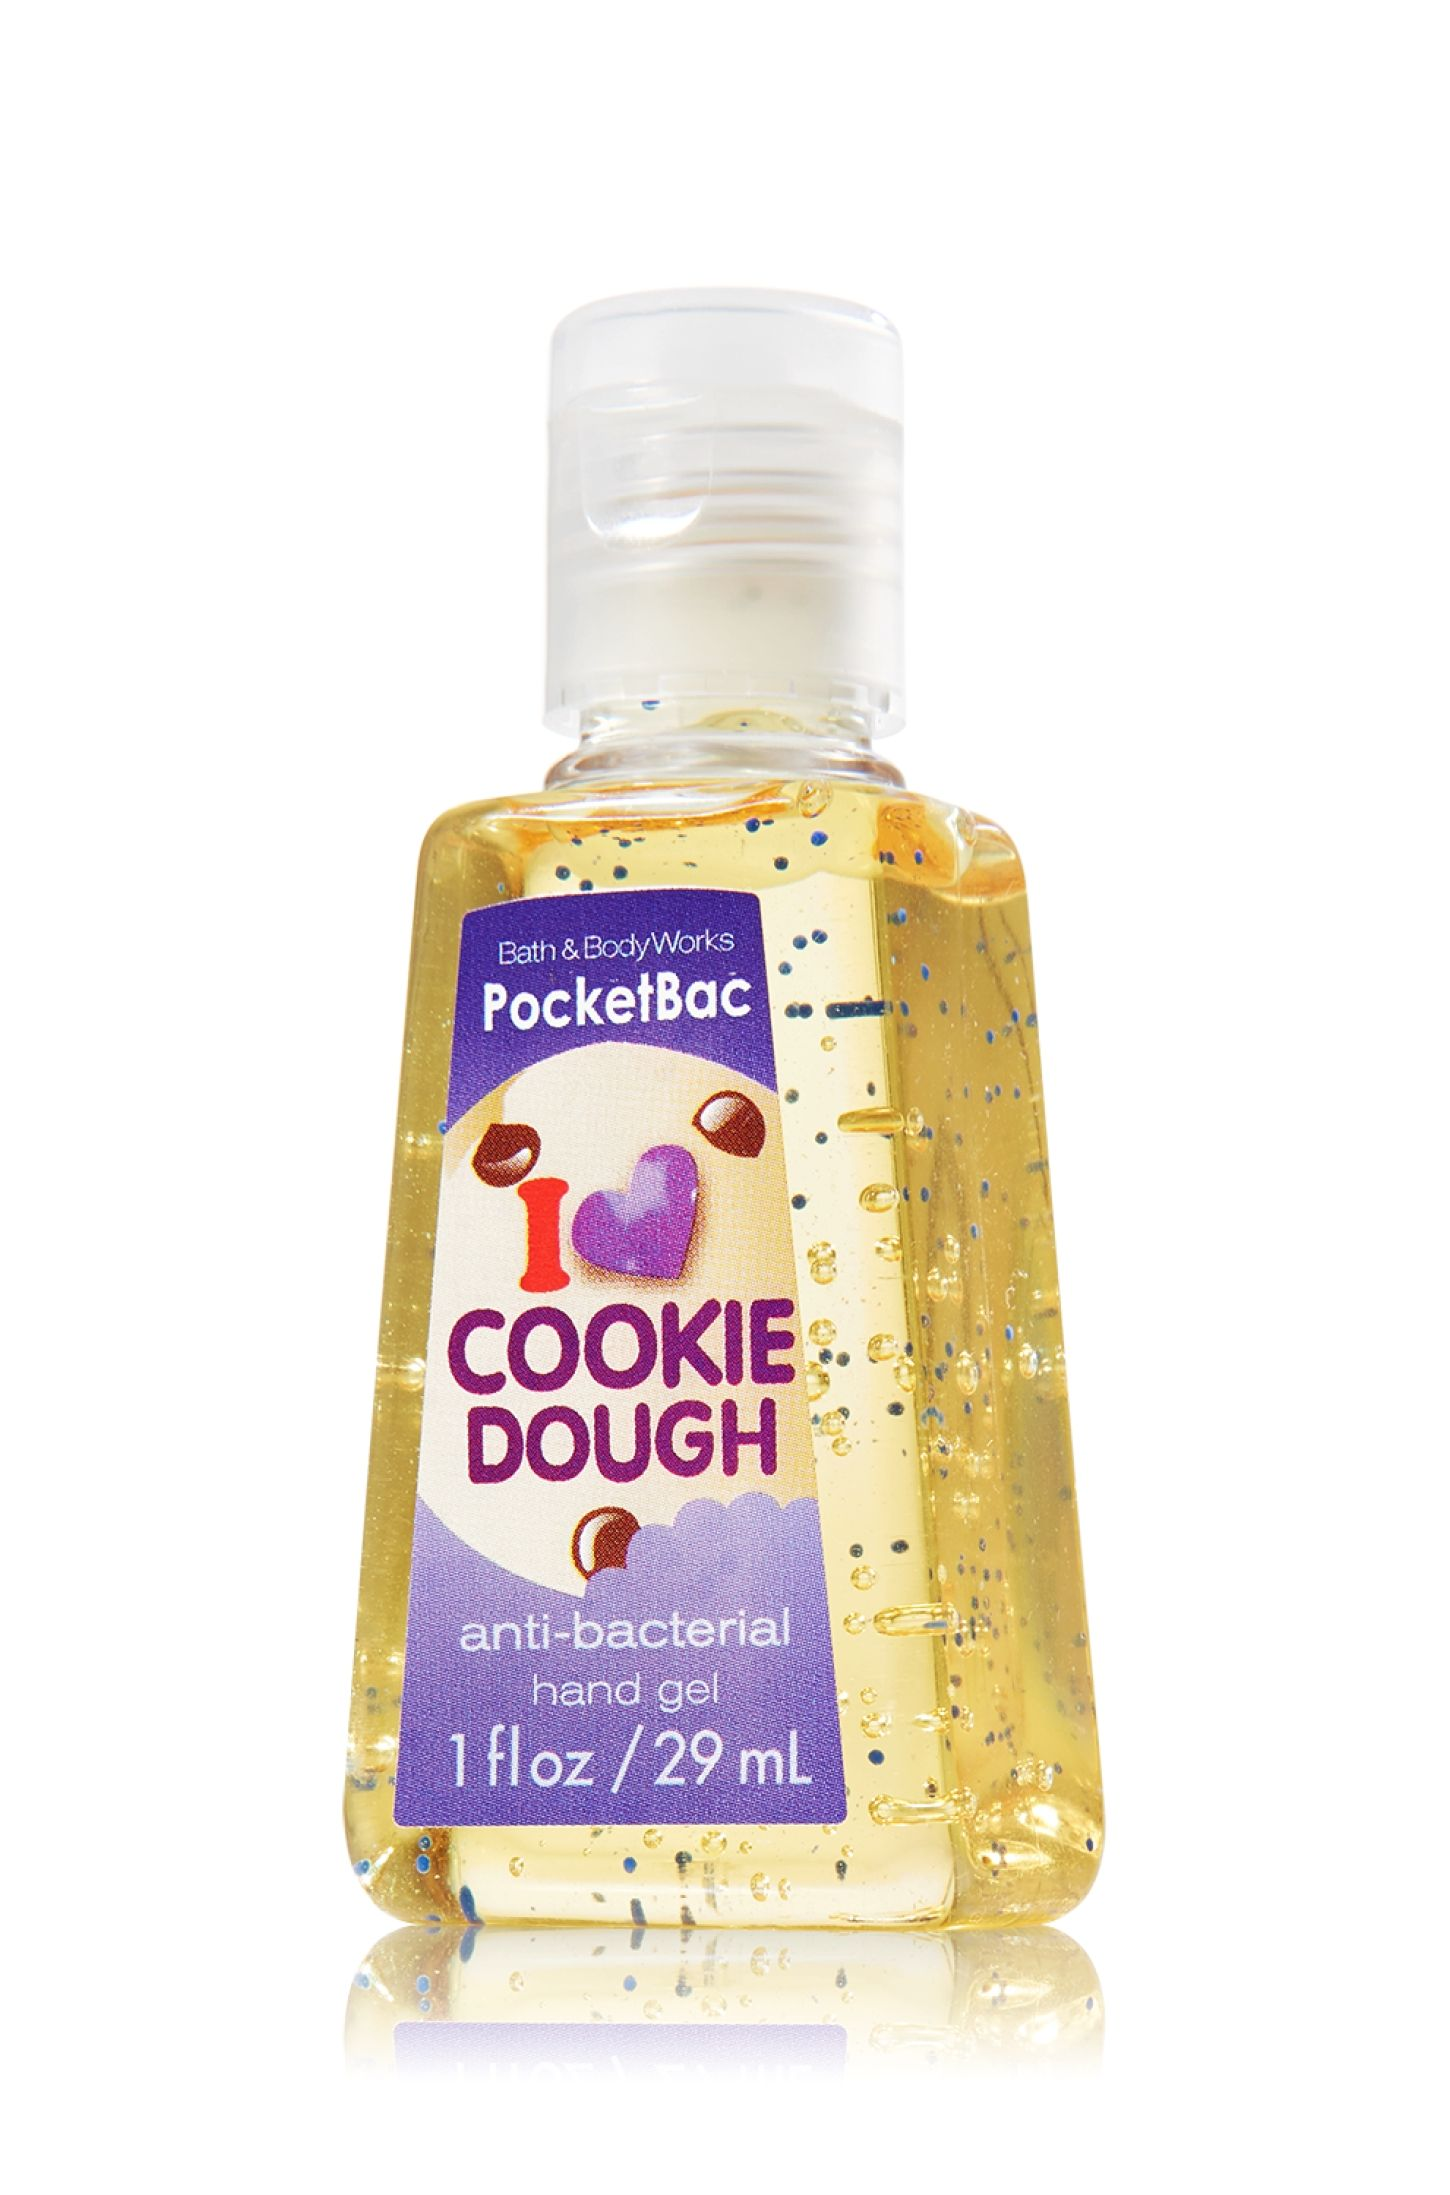 Cookie Dough Pocketbac Sanitizing Hand Gel Anti Bacterial Bath